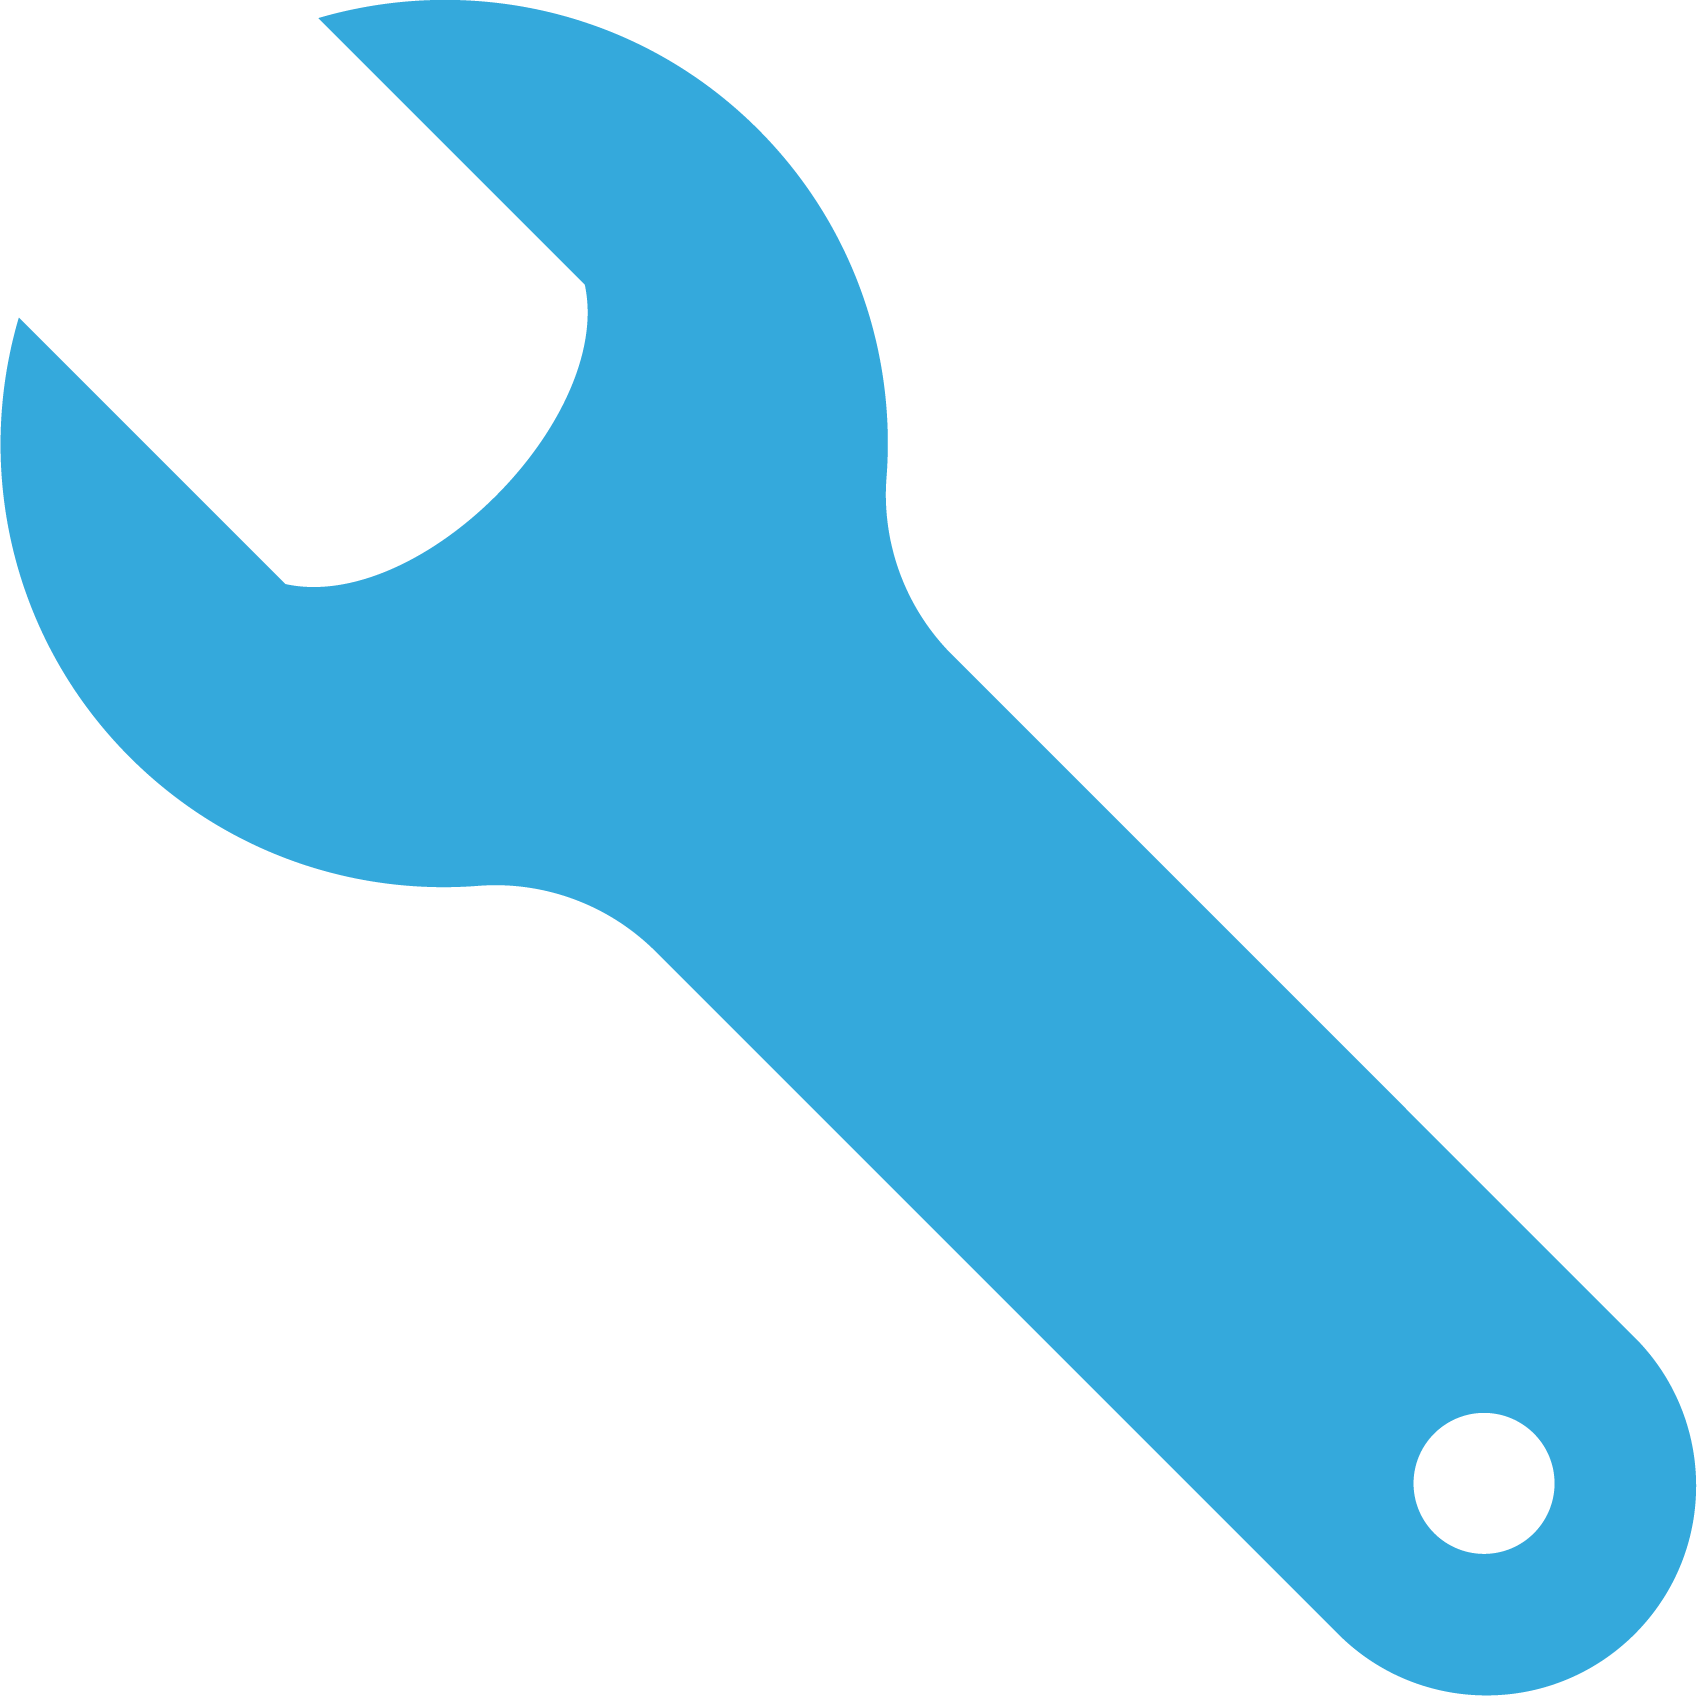 icon of a wrench.